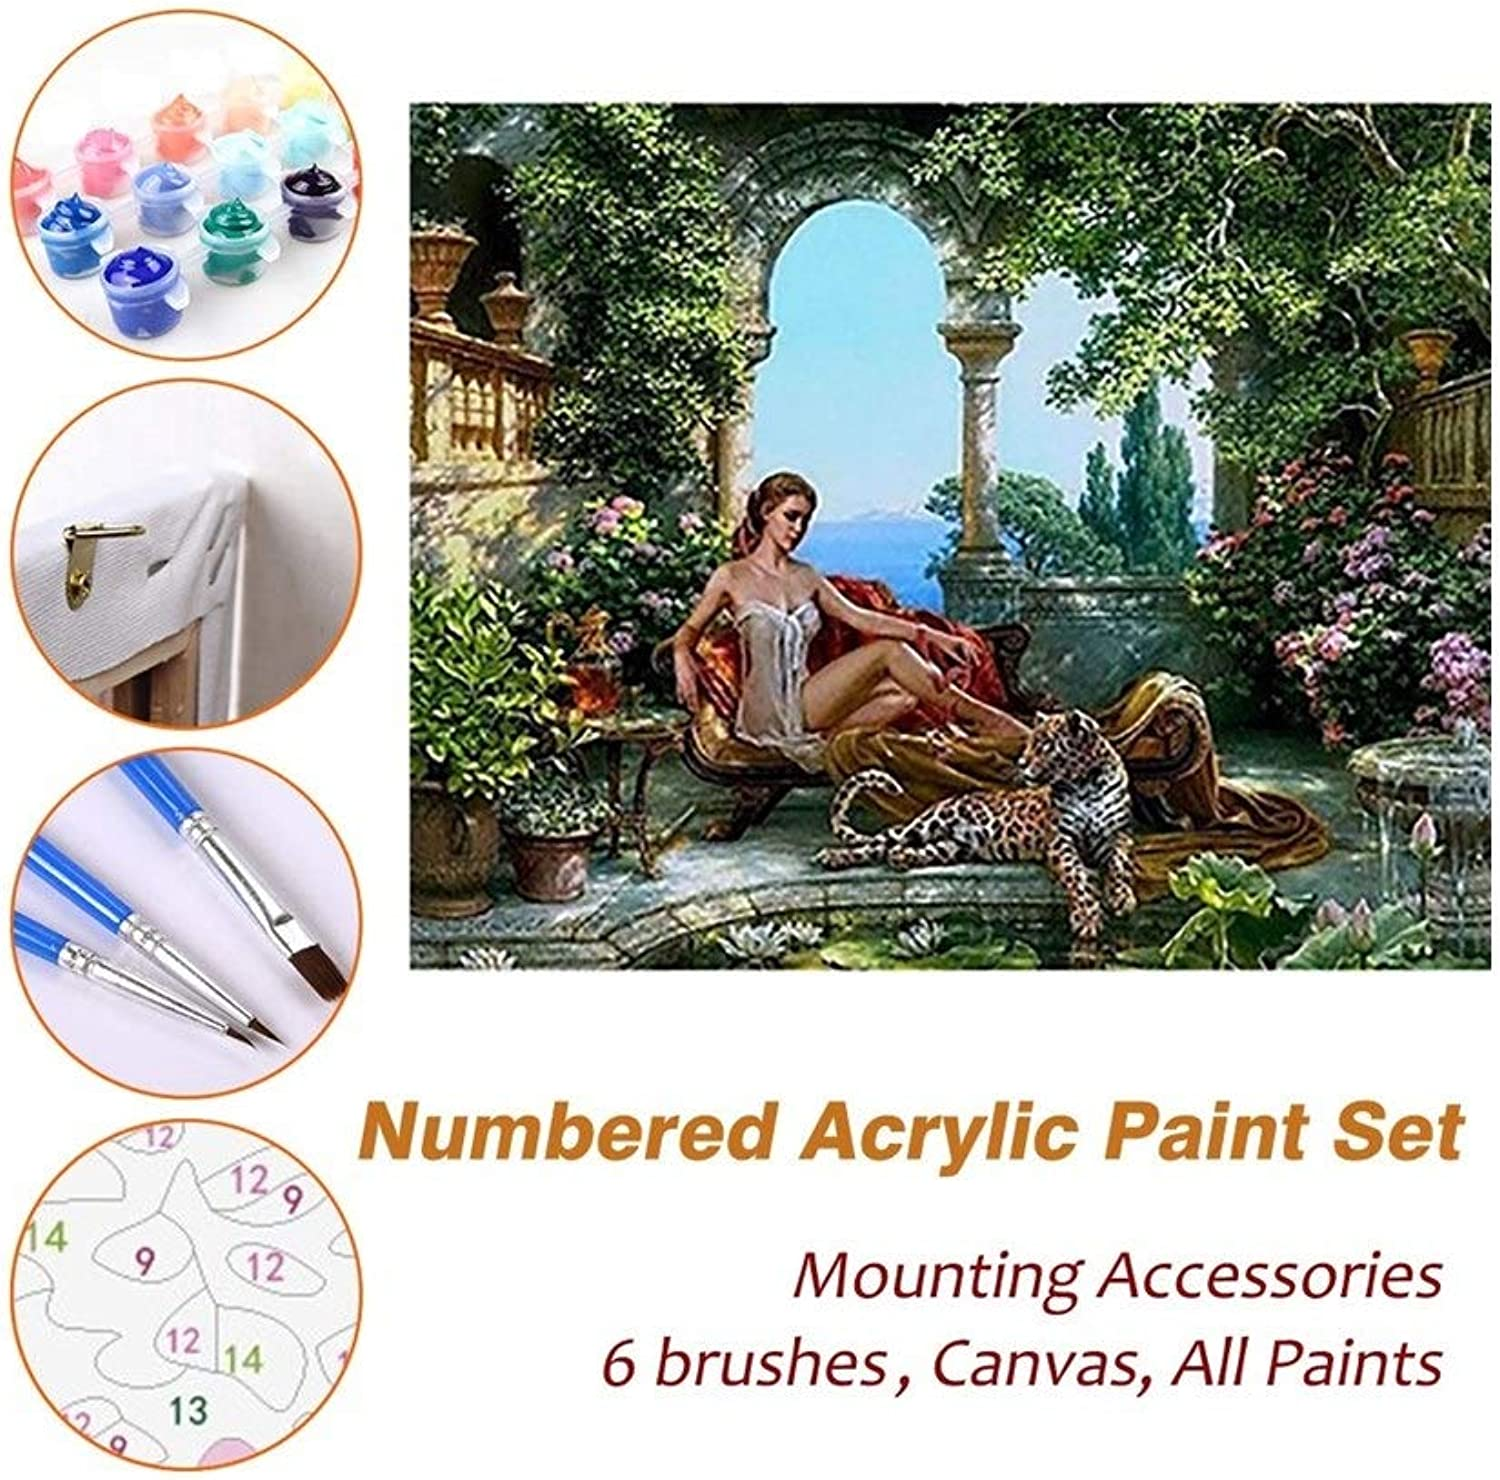 Puzzle House Paint Max Paint By Numbers Kits For Kids Adults Beginner Teens Pine Framed DIY Oil Acrylic Painting Paint Sets, Beauty And The Leopard 522 (color   With Pine Frame, Size   500mm x 650mm)